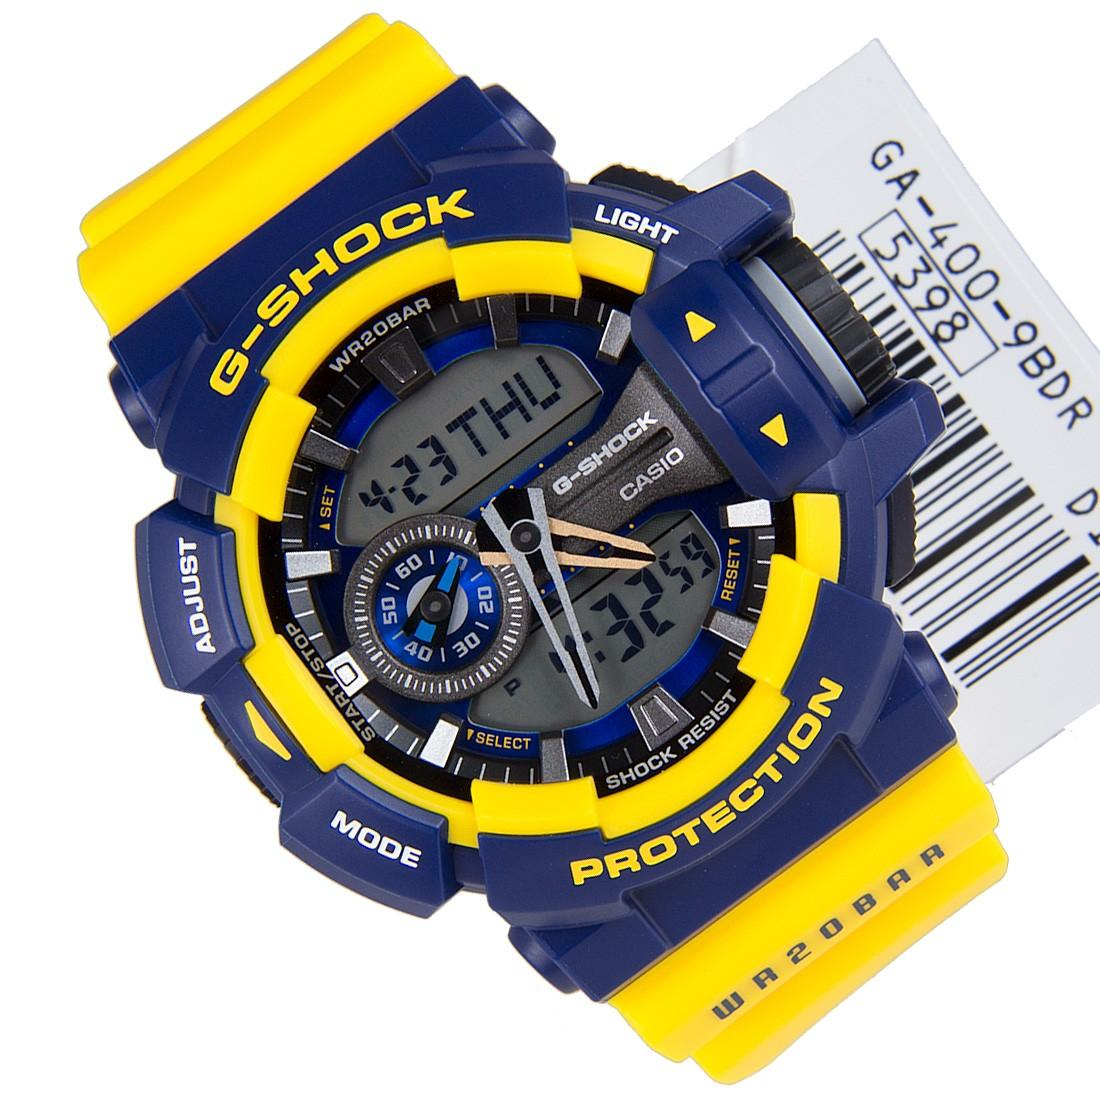 Review Casio G Shock Standard Classic Men Sport Yellow Resin Strap Watch Ga 400 9B Ga 400 9Bdr Ga 400 9Bd Ga 400 9 Casio G Shock On Singapore